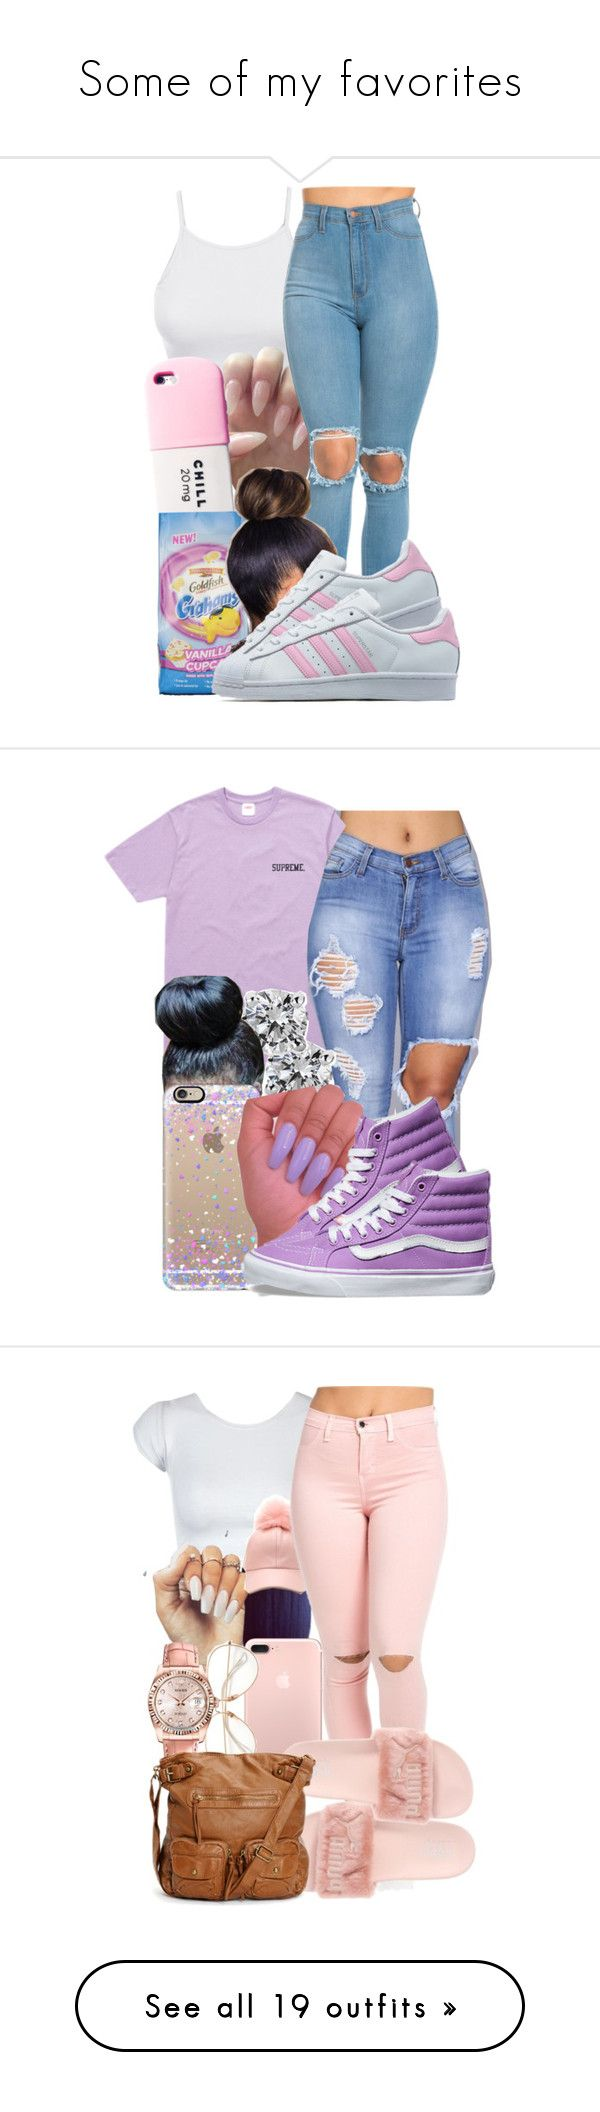 """""""Some of my favorites"""" by pimpcessjayyy ❤ liked on Polyvore featuring LE3NO, Valfré, adidas Originals, Blue Nile, Casetify, Vans, Rolex, Nadri, Kate Spade and Converse"""